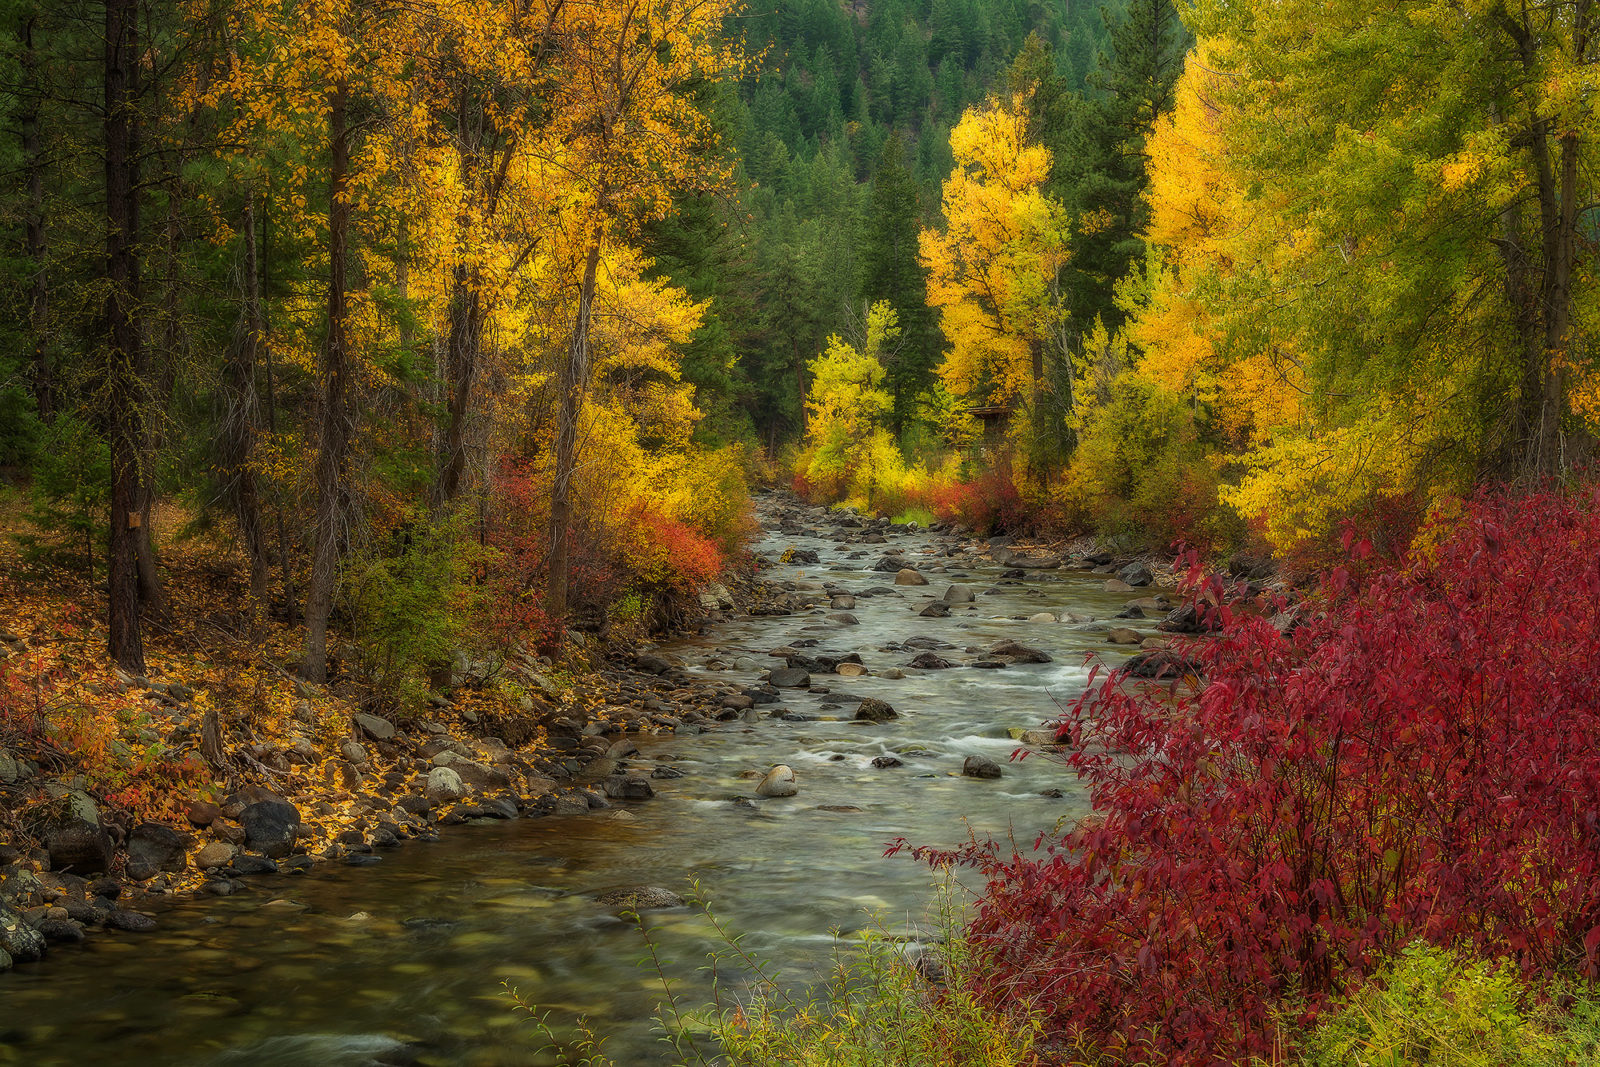 Autumn on the Twisp